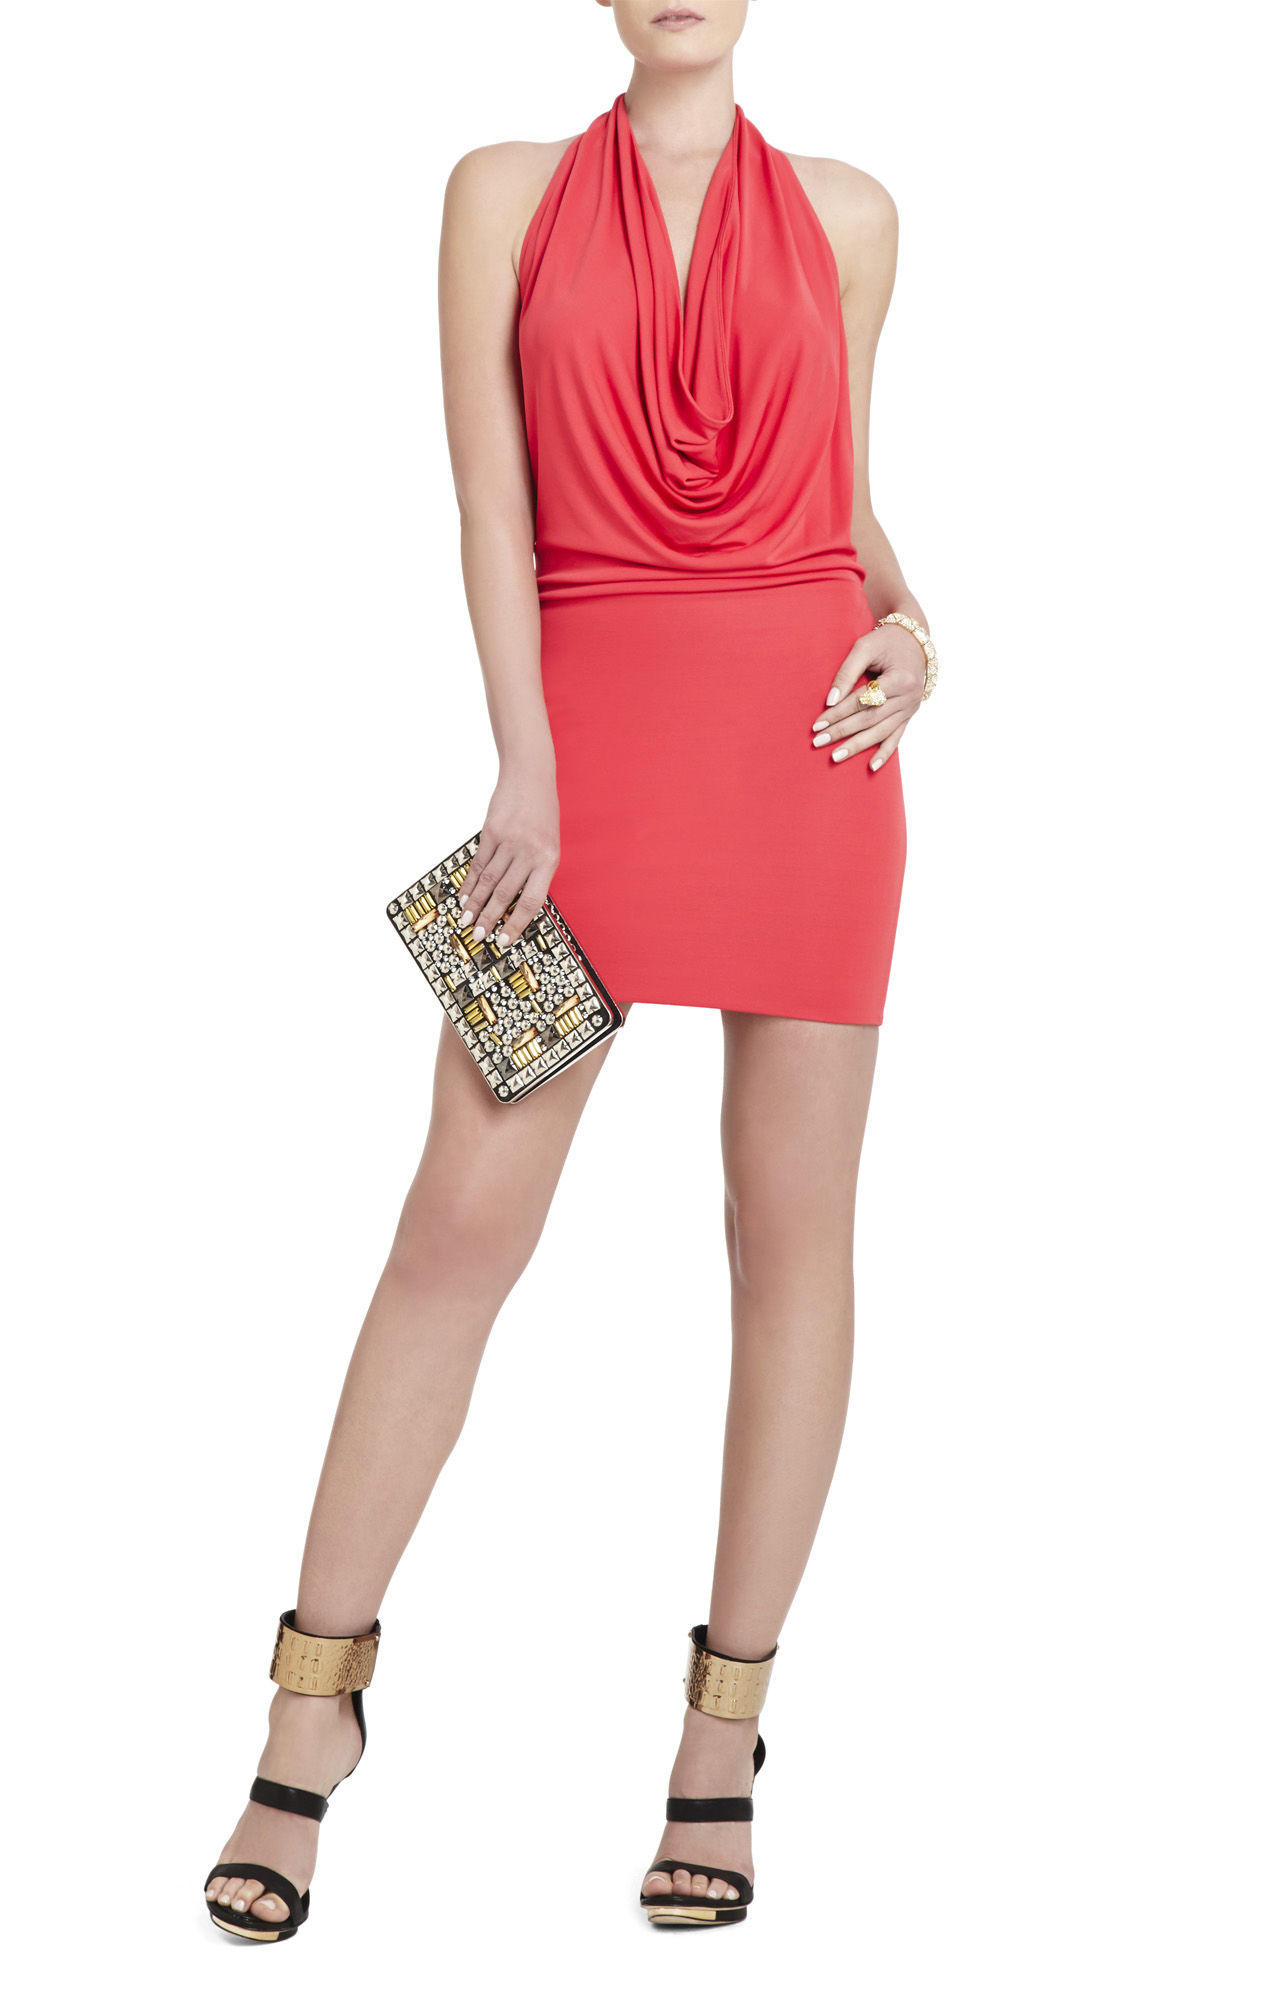 BCBG like new Veda Low-Back Cowl-Neck Dress in small red berry  Orig. rtl: $198<br /> <br /> A simple, slinky little number that will quickly become your go-to for fun evenings out.<br /> <br />     Cowl-neck. Sleeveless.<br />     Halter neck. Low-back. Fitted skirt.<br />     Rayon, Polyester.<br />     Machine Wash.<br /> <br /> Photo and description credits: BCBG.com